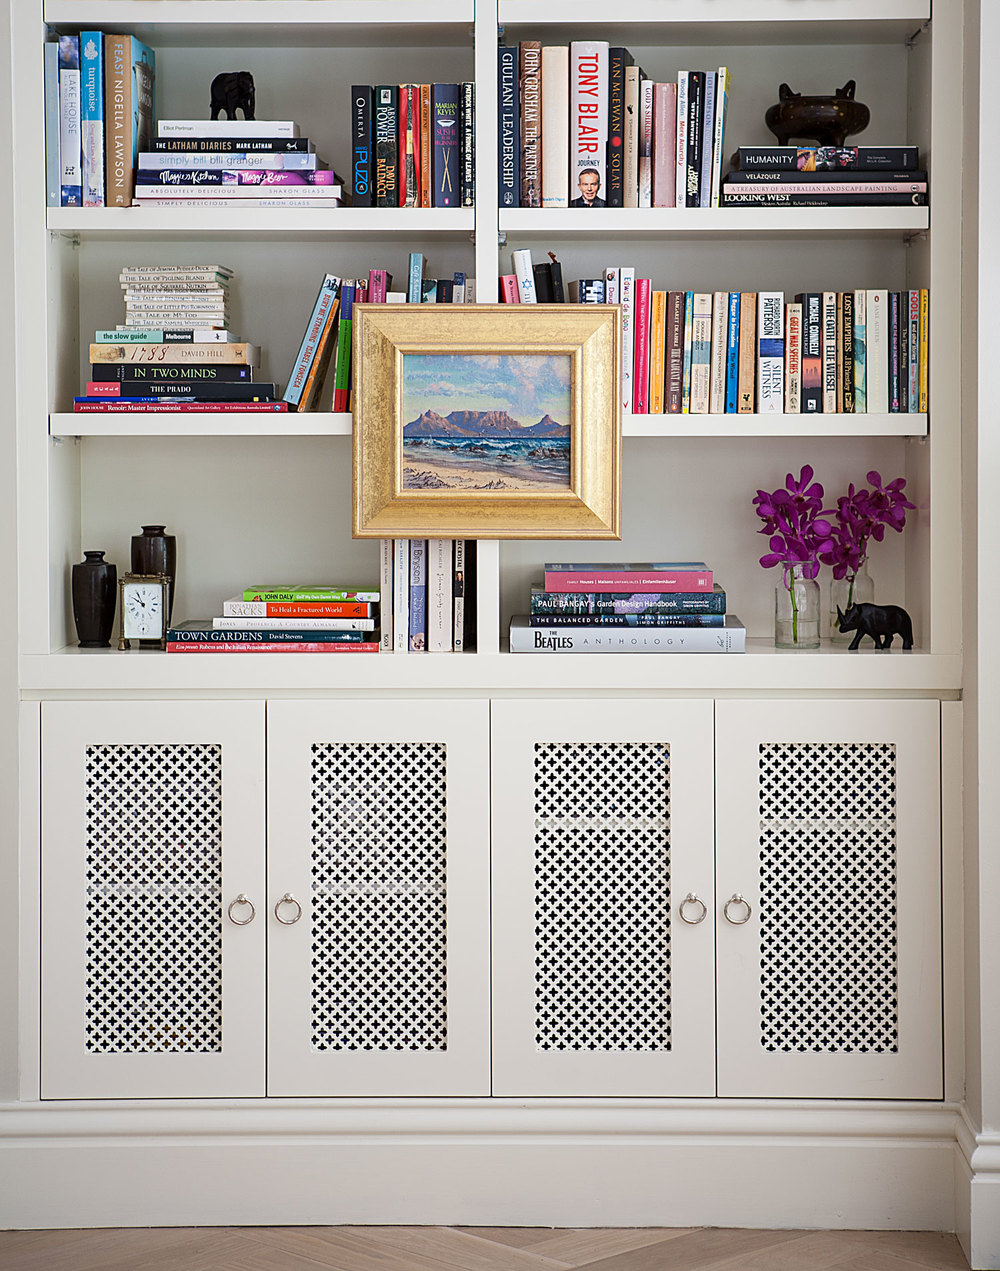 custom-joinery-bookshelf-white-lacquer-with-mesh-doors-book-display-mounted-print-diane-bergeron.jpg